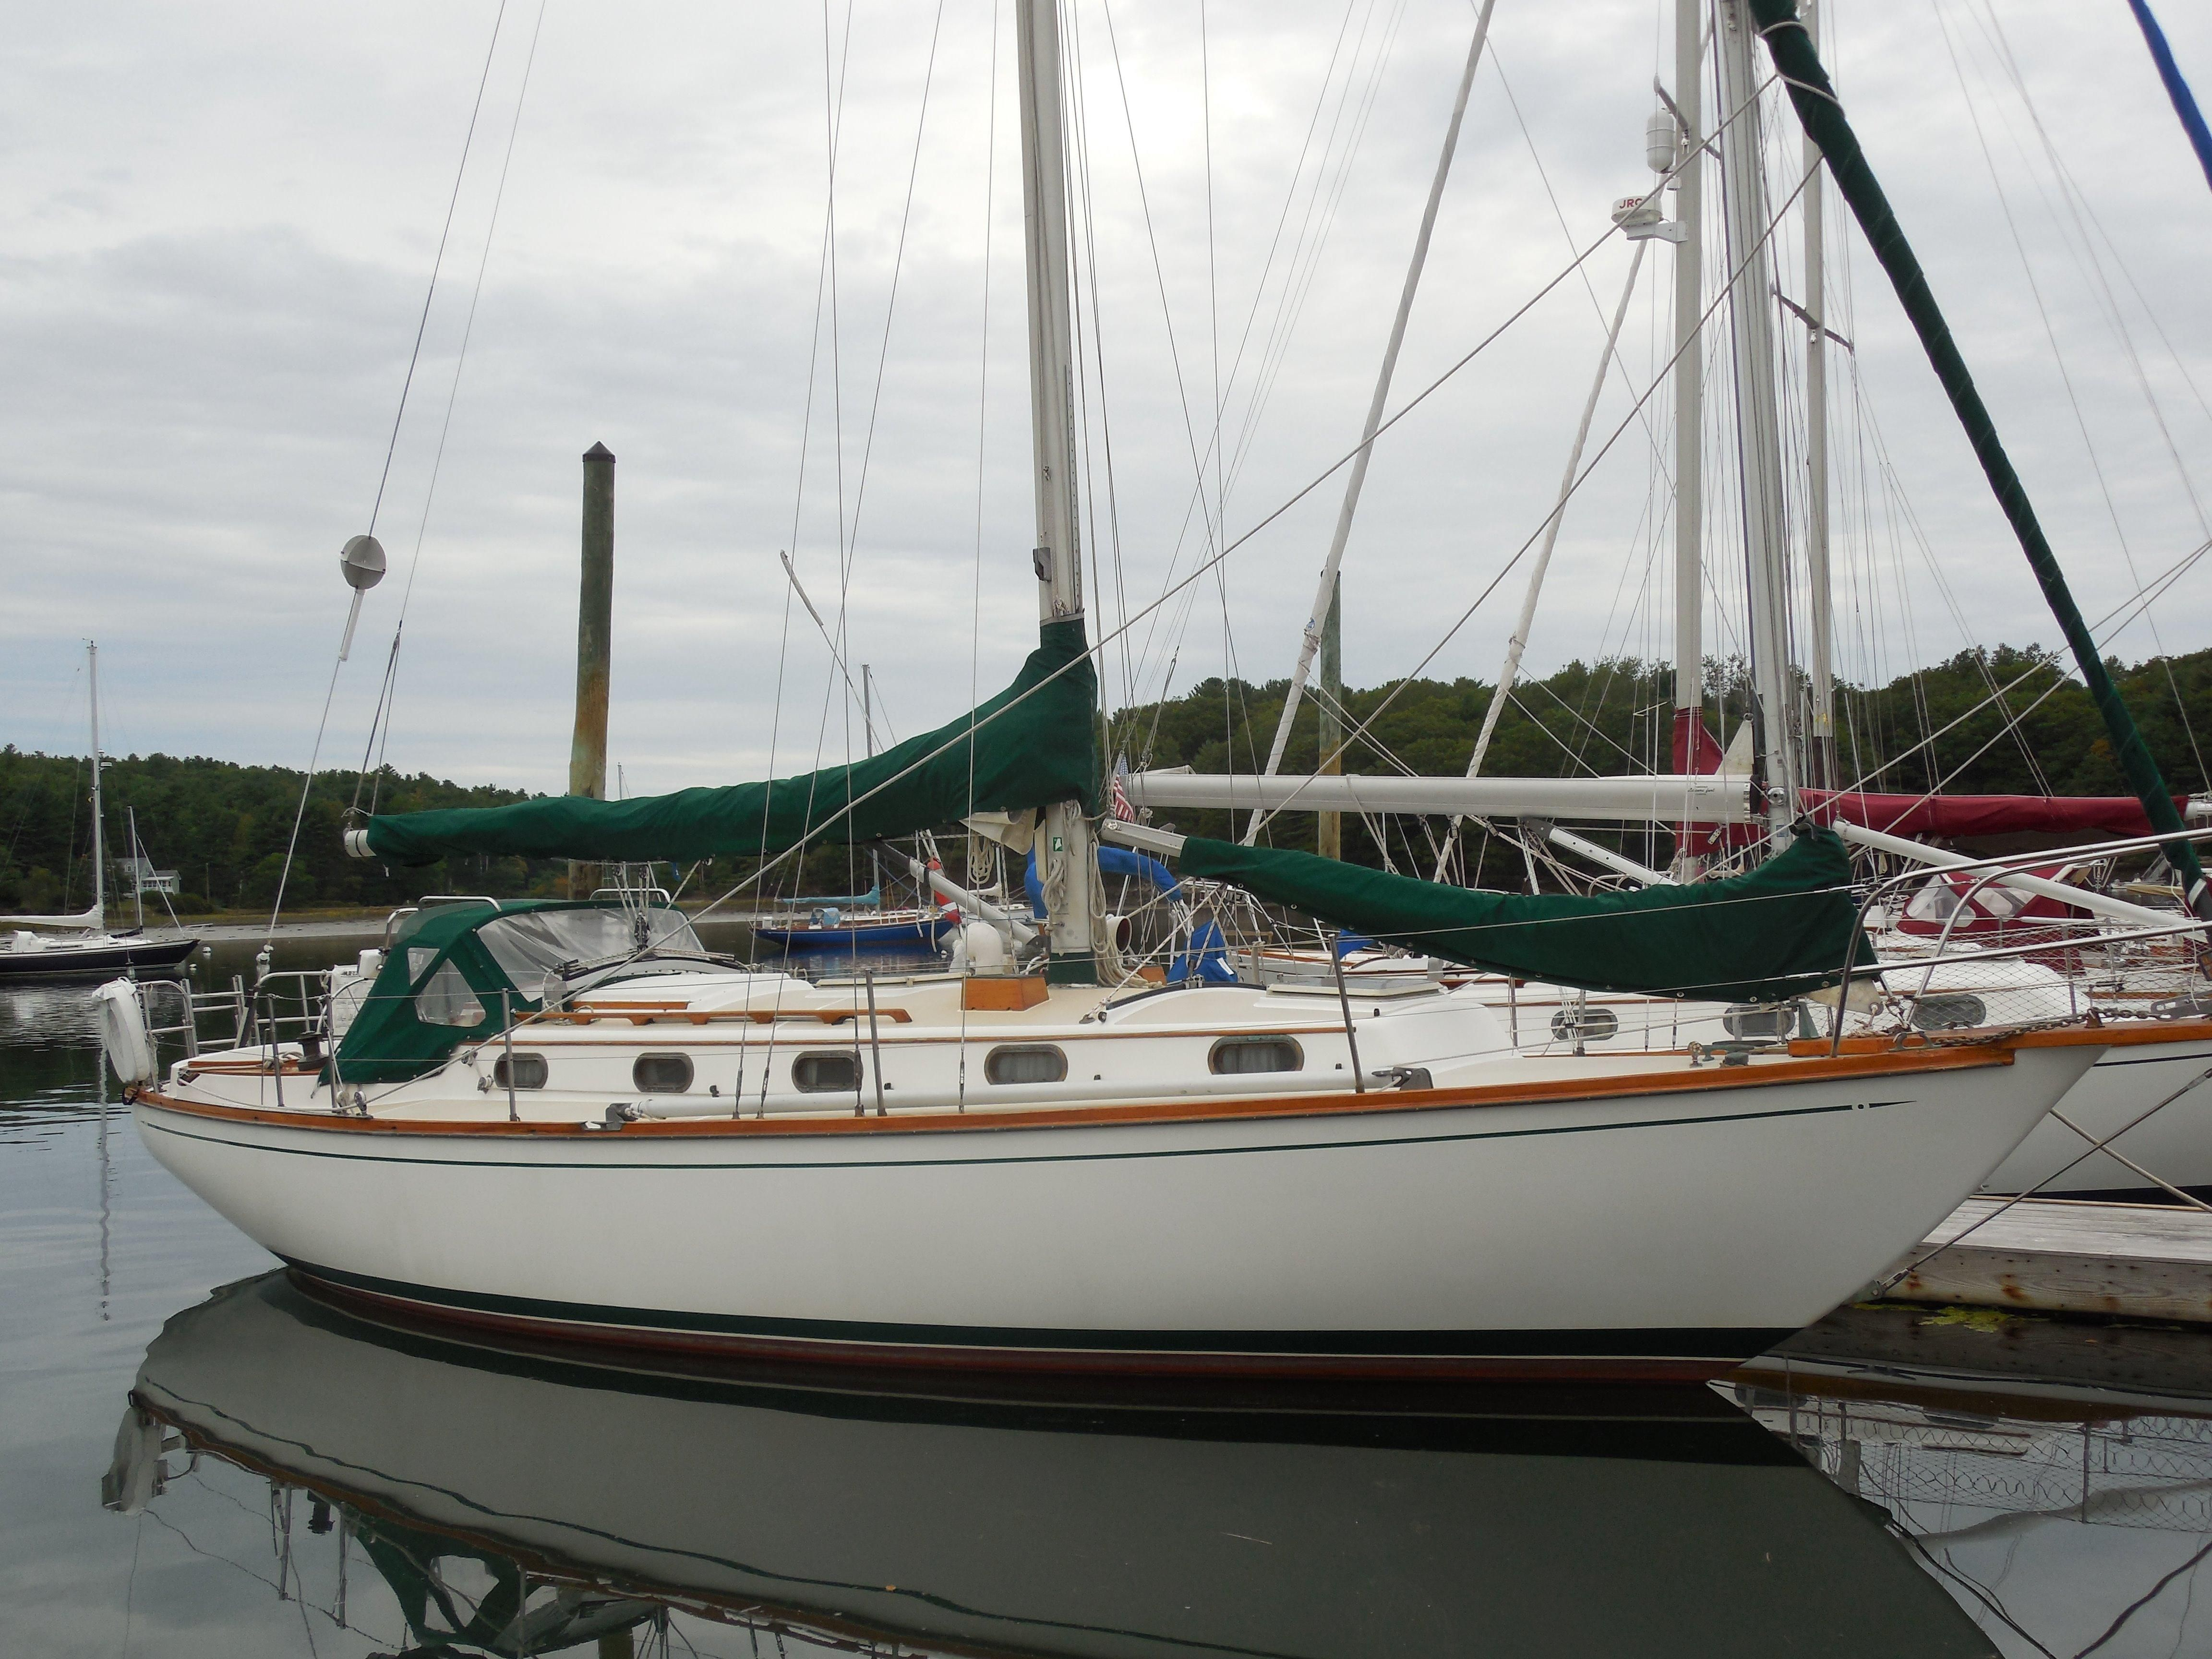 1987 Cape Dory 36 Sail Boat For Sale - www yachtworld com | I miss